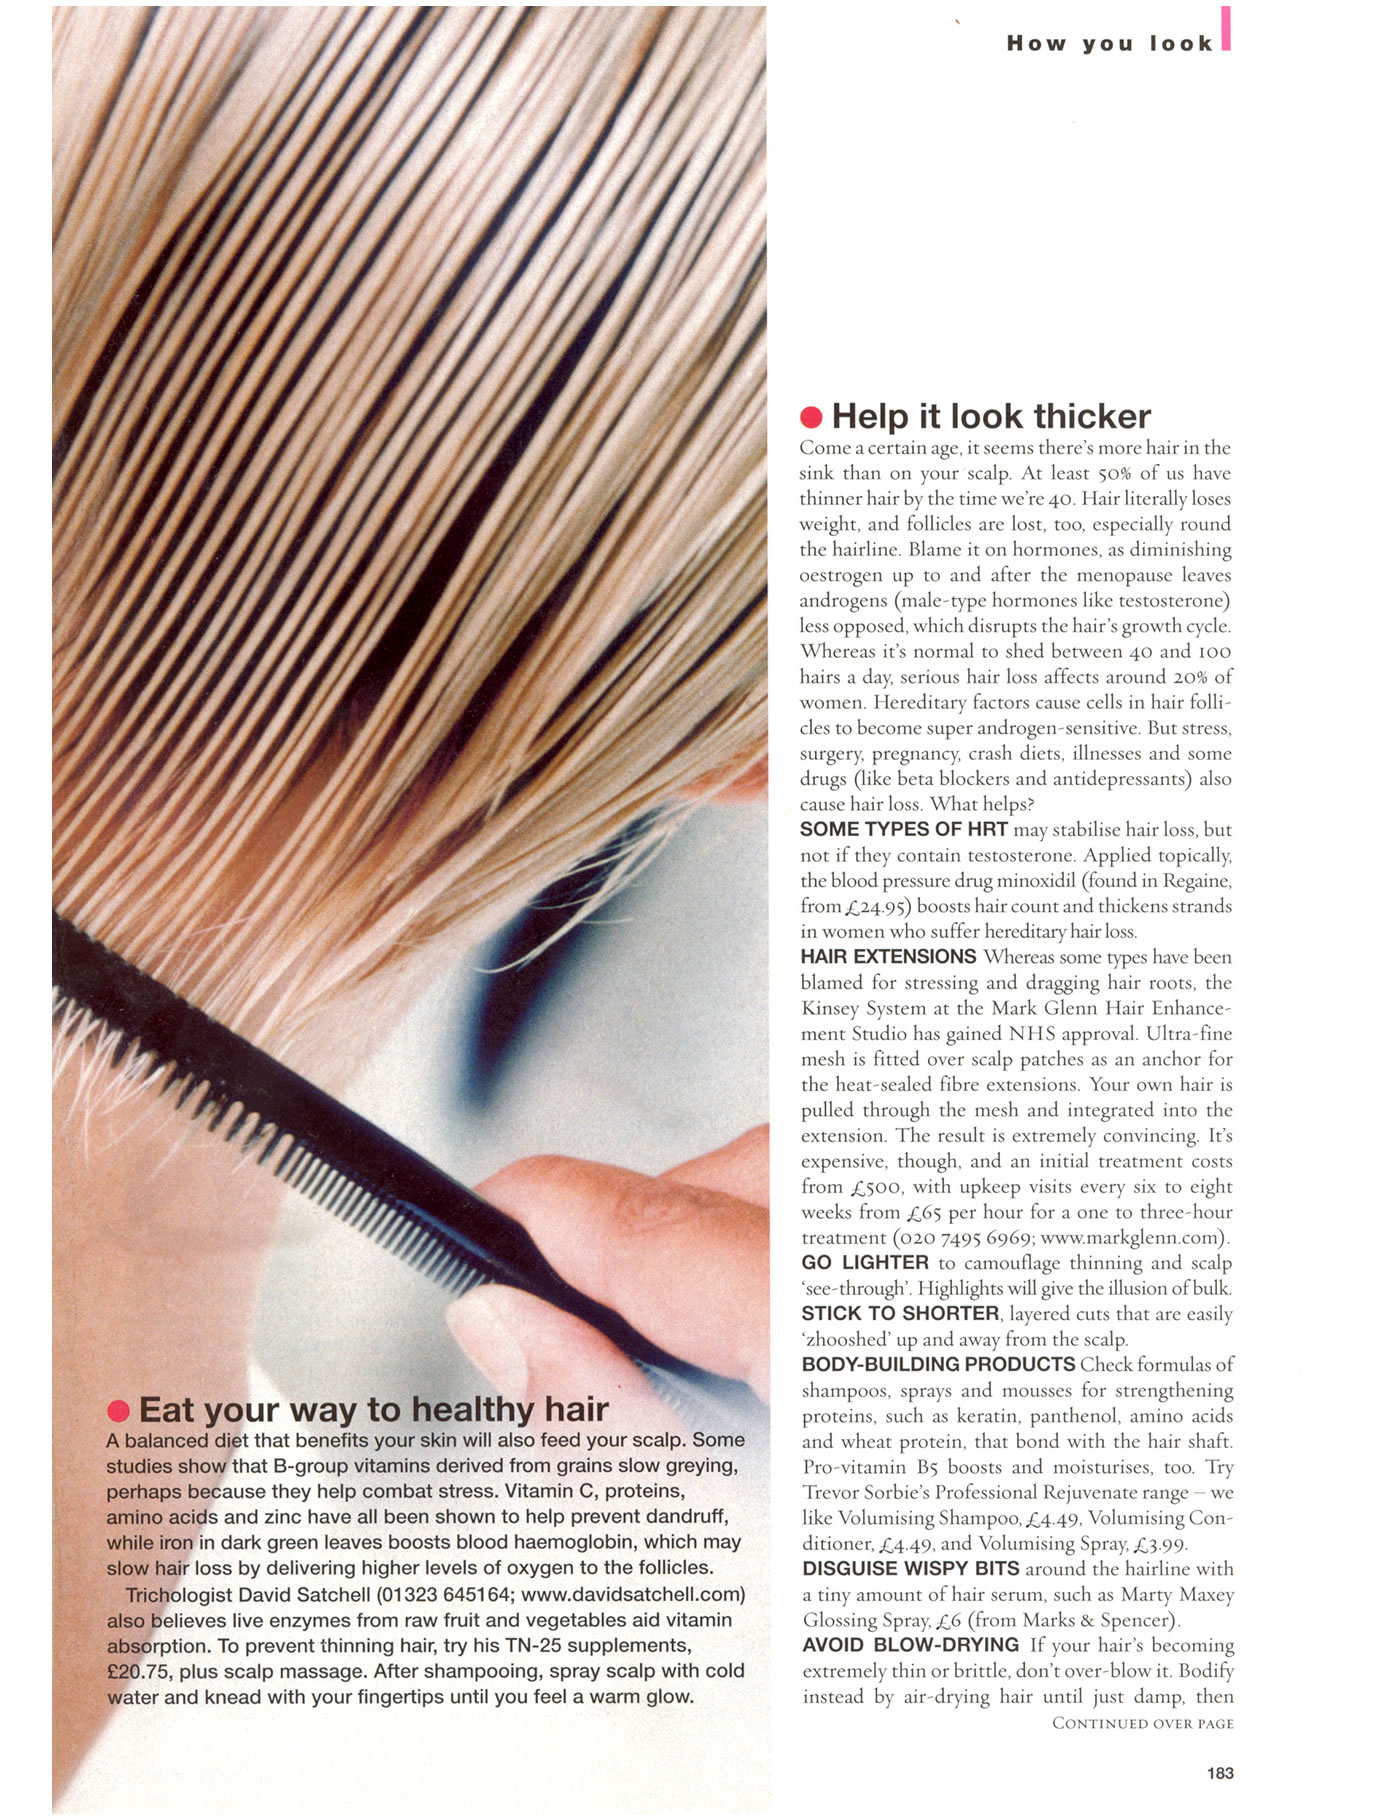 Good Housekeeping - Kinsey System for female hair loss